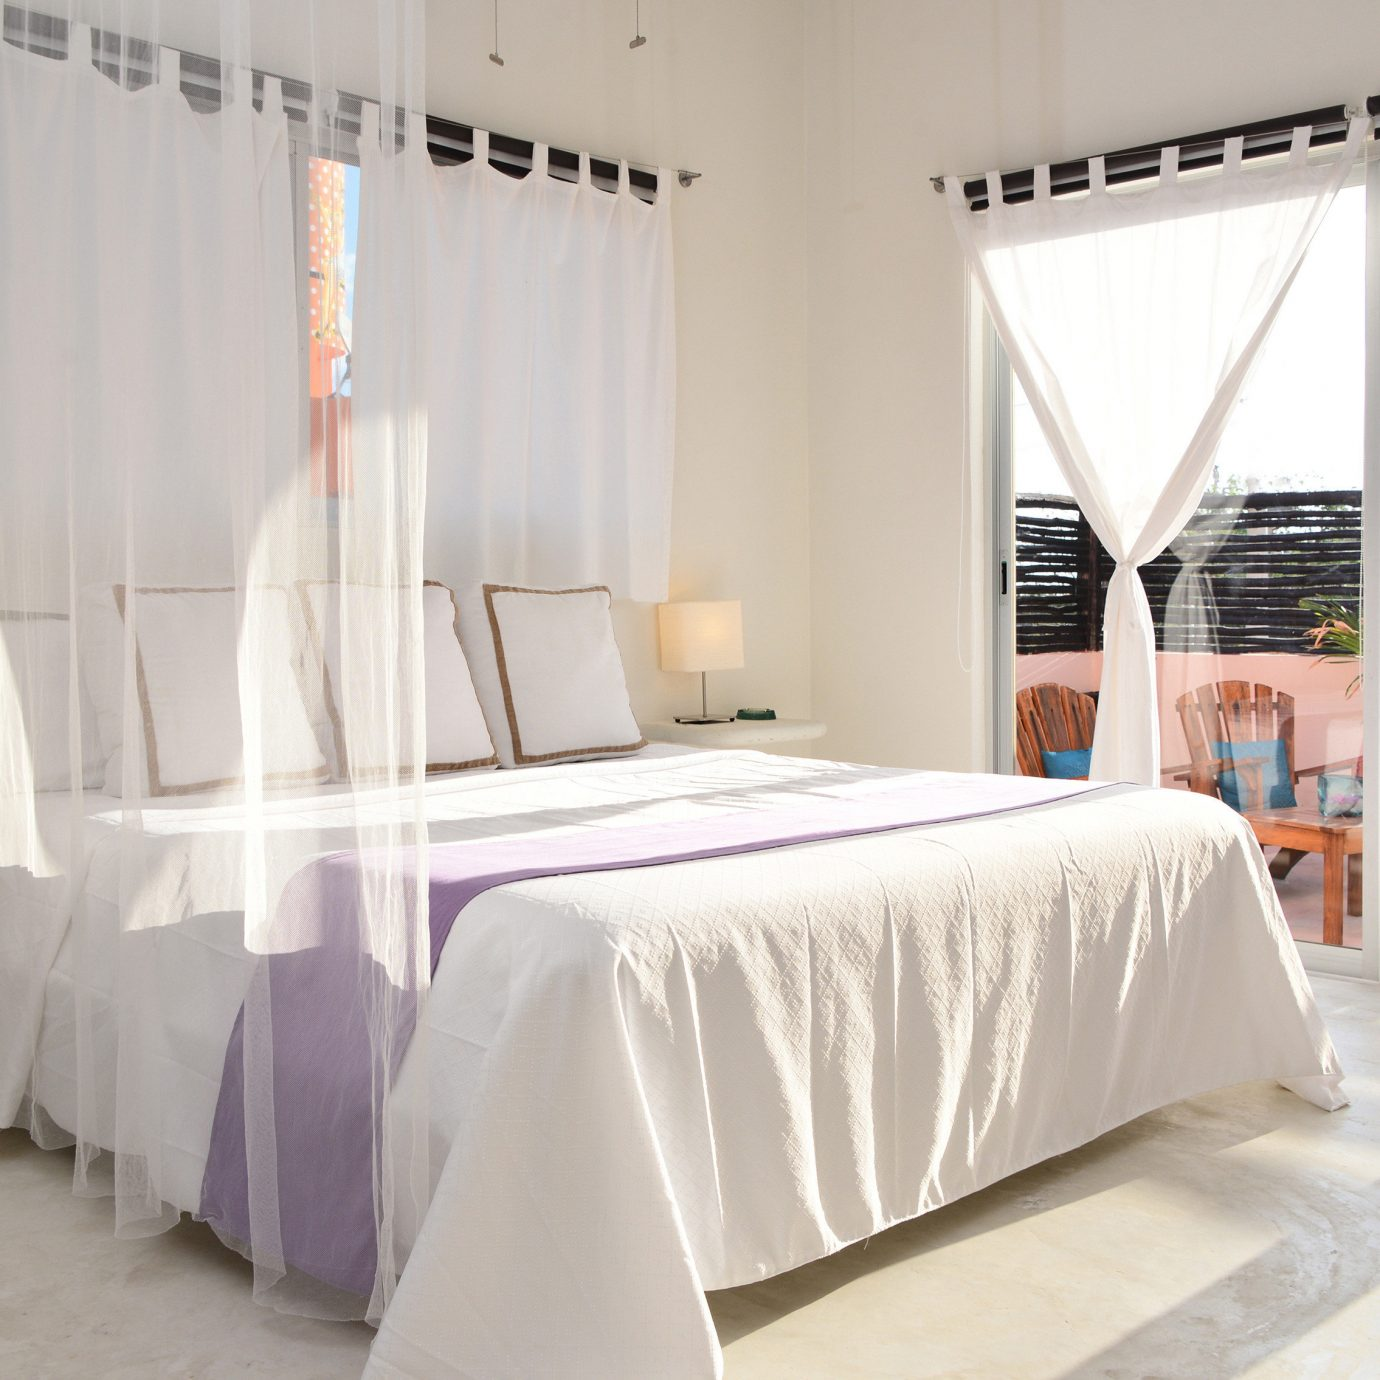 property pillow Bedroom white bed sheet curtain textile Suite cottage